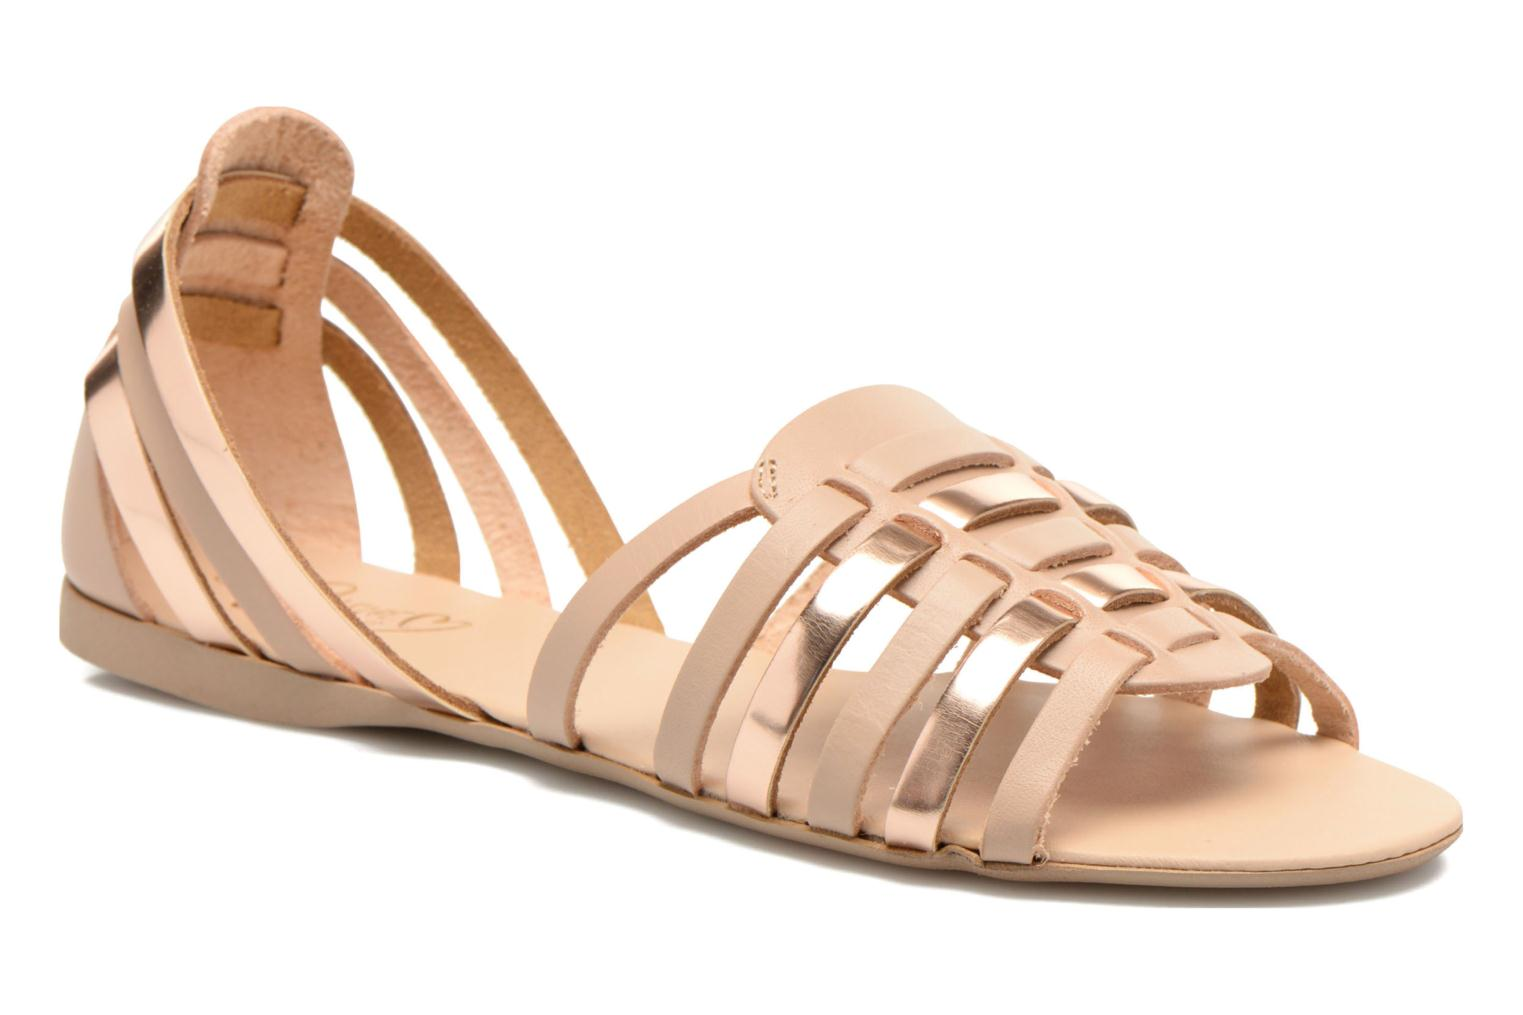 Sandalen Damuse by I Love Shoes